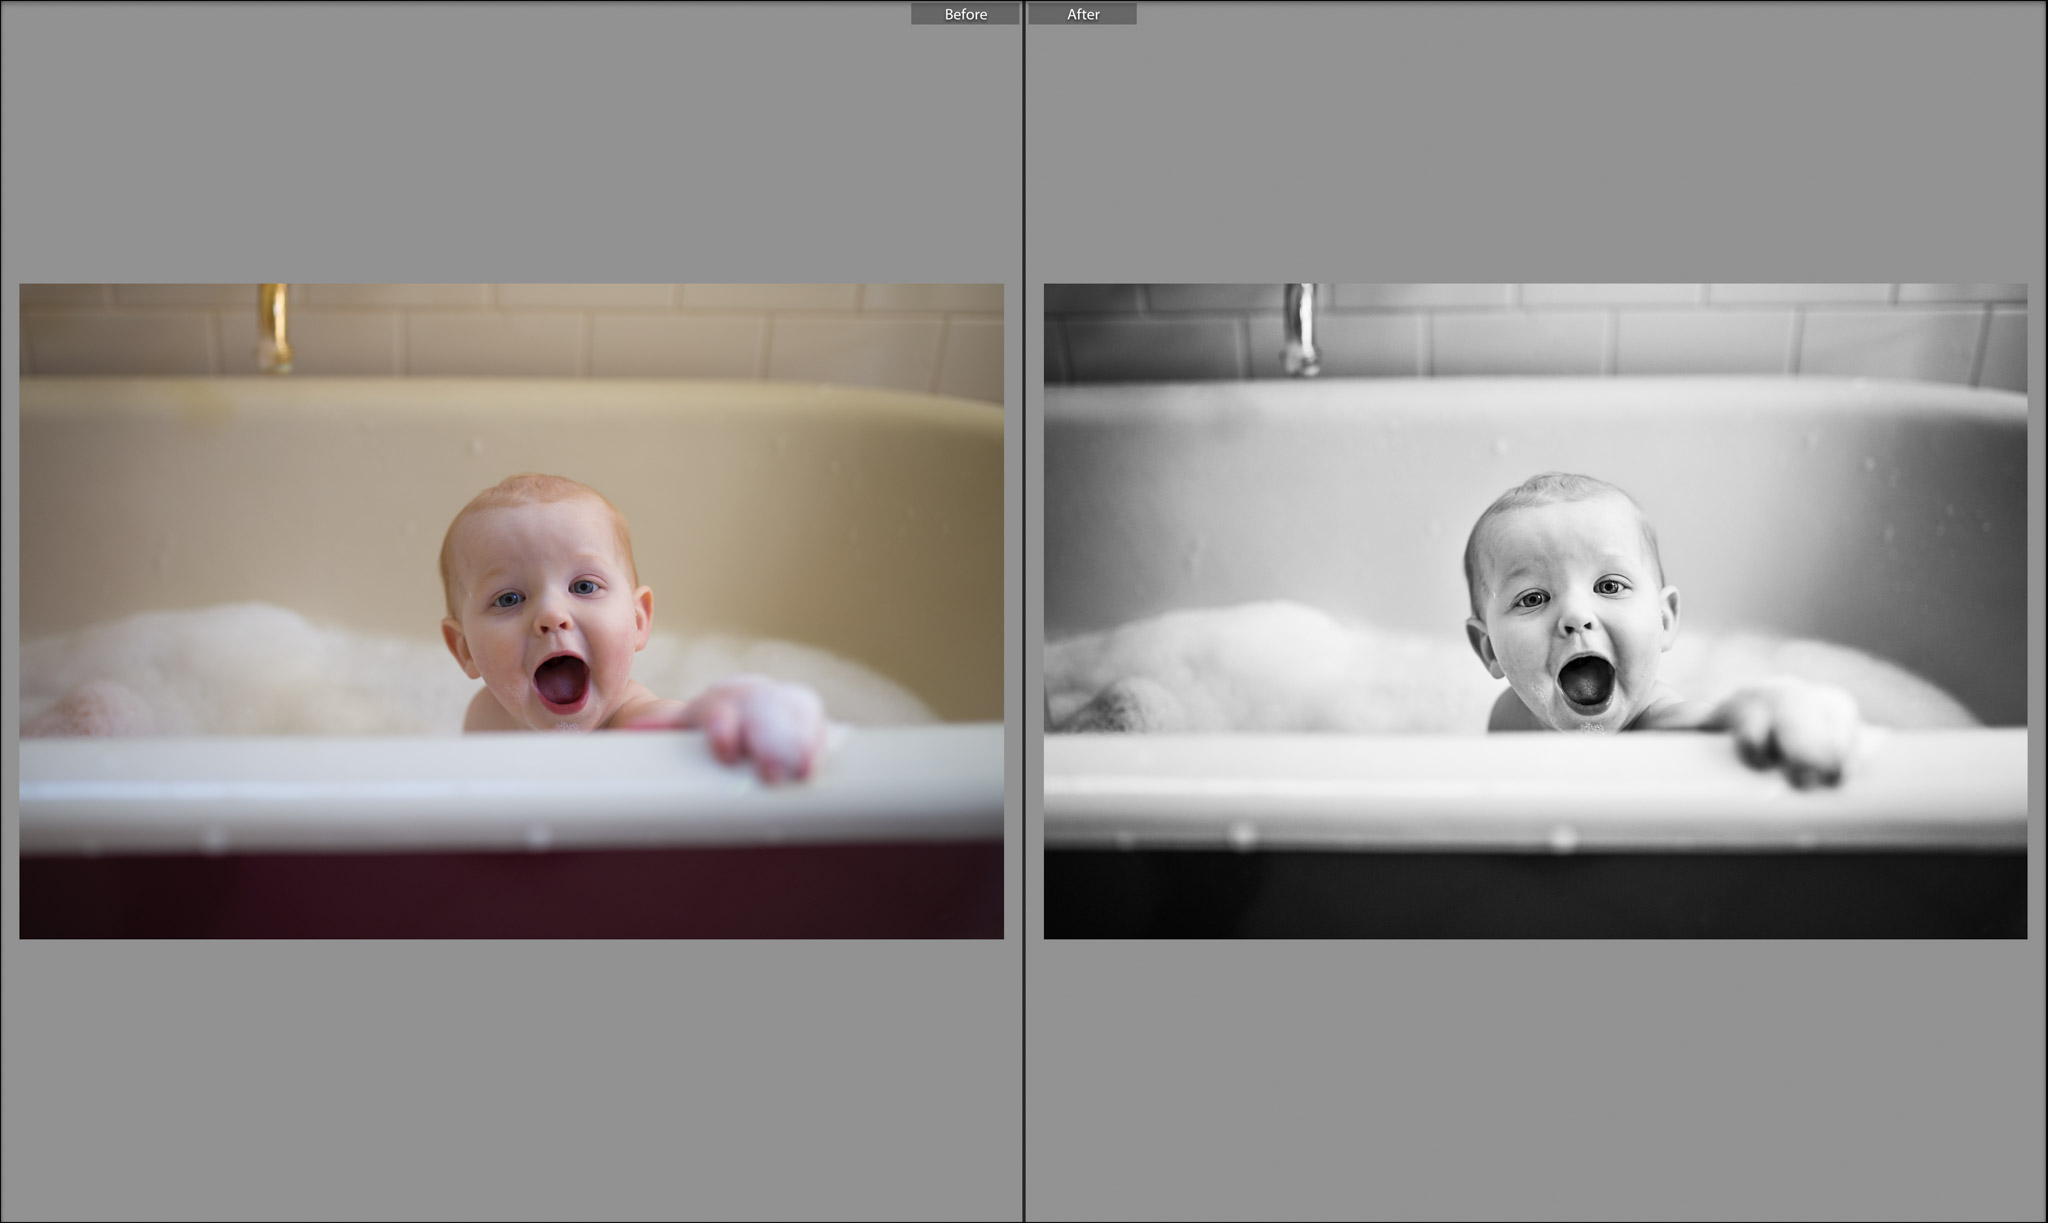 before and after little boy in the bath (1 of 1).jpg